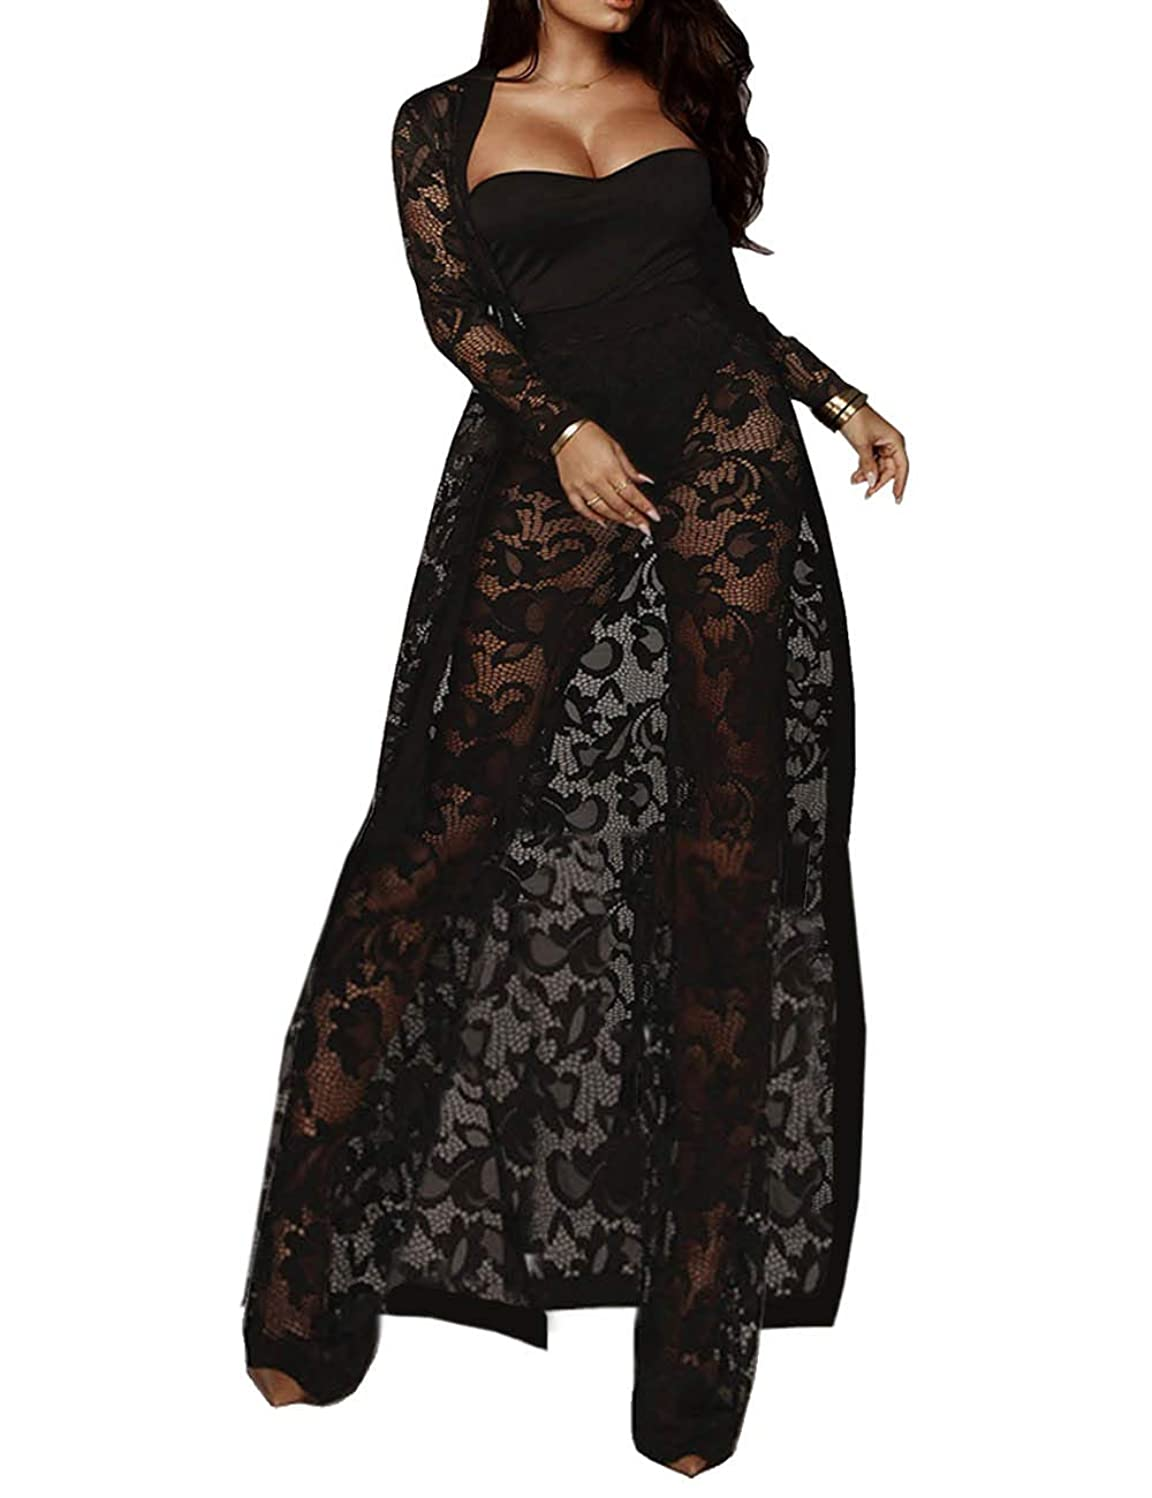 XXXITICAT Women's Sexy Lace Transparent See Through Wide Leg Pants Tube Top Long Coat Sets Suits